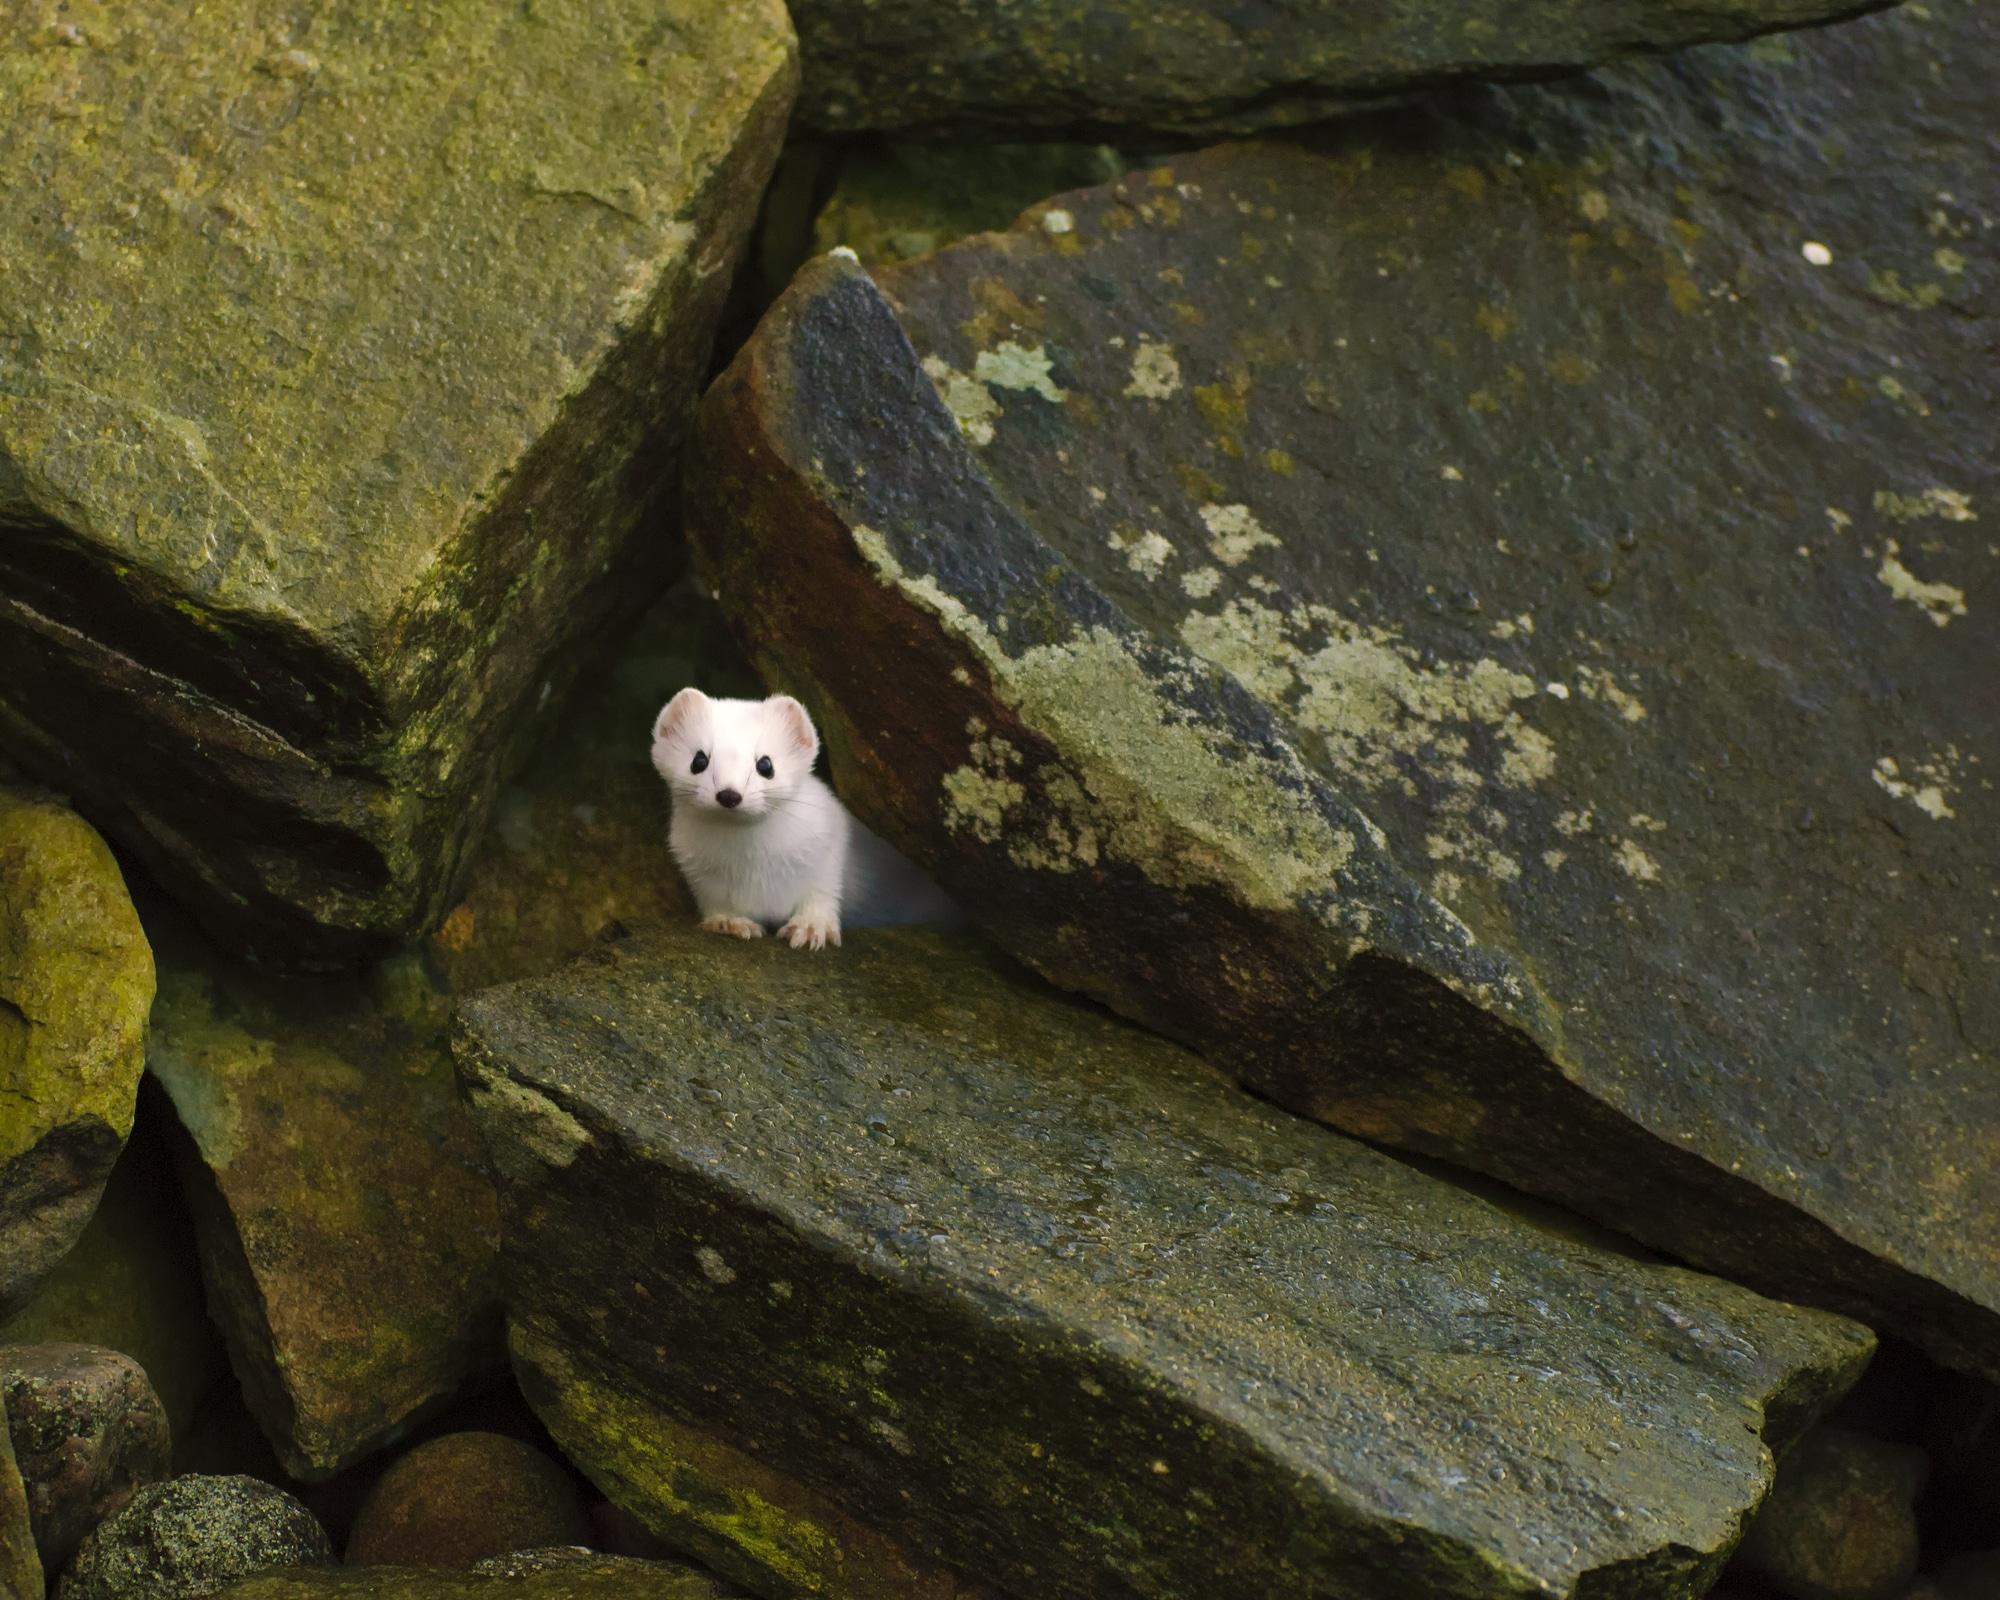 A weasel sticks its head out of a cave